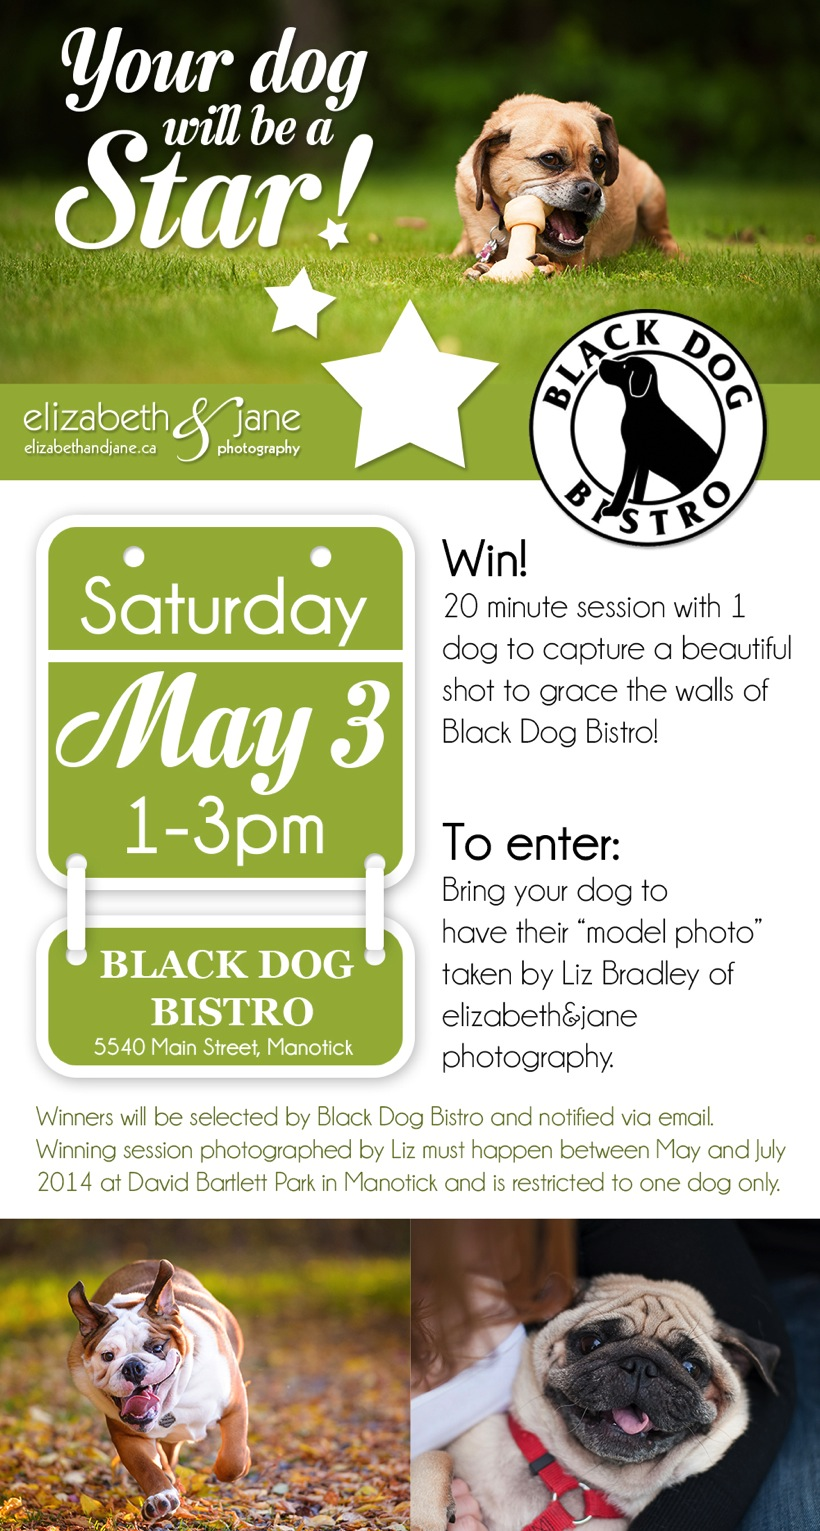 Your dog could be a star at Black Dog Bistro